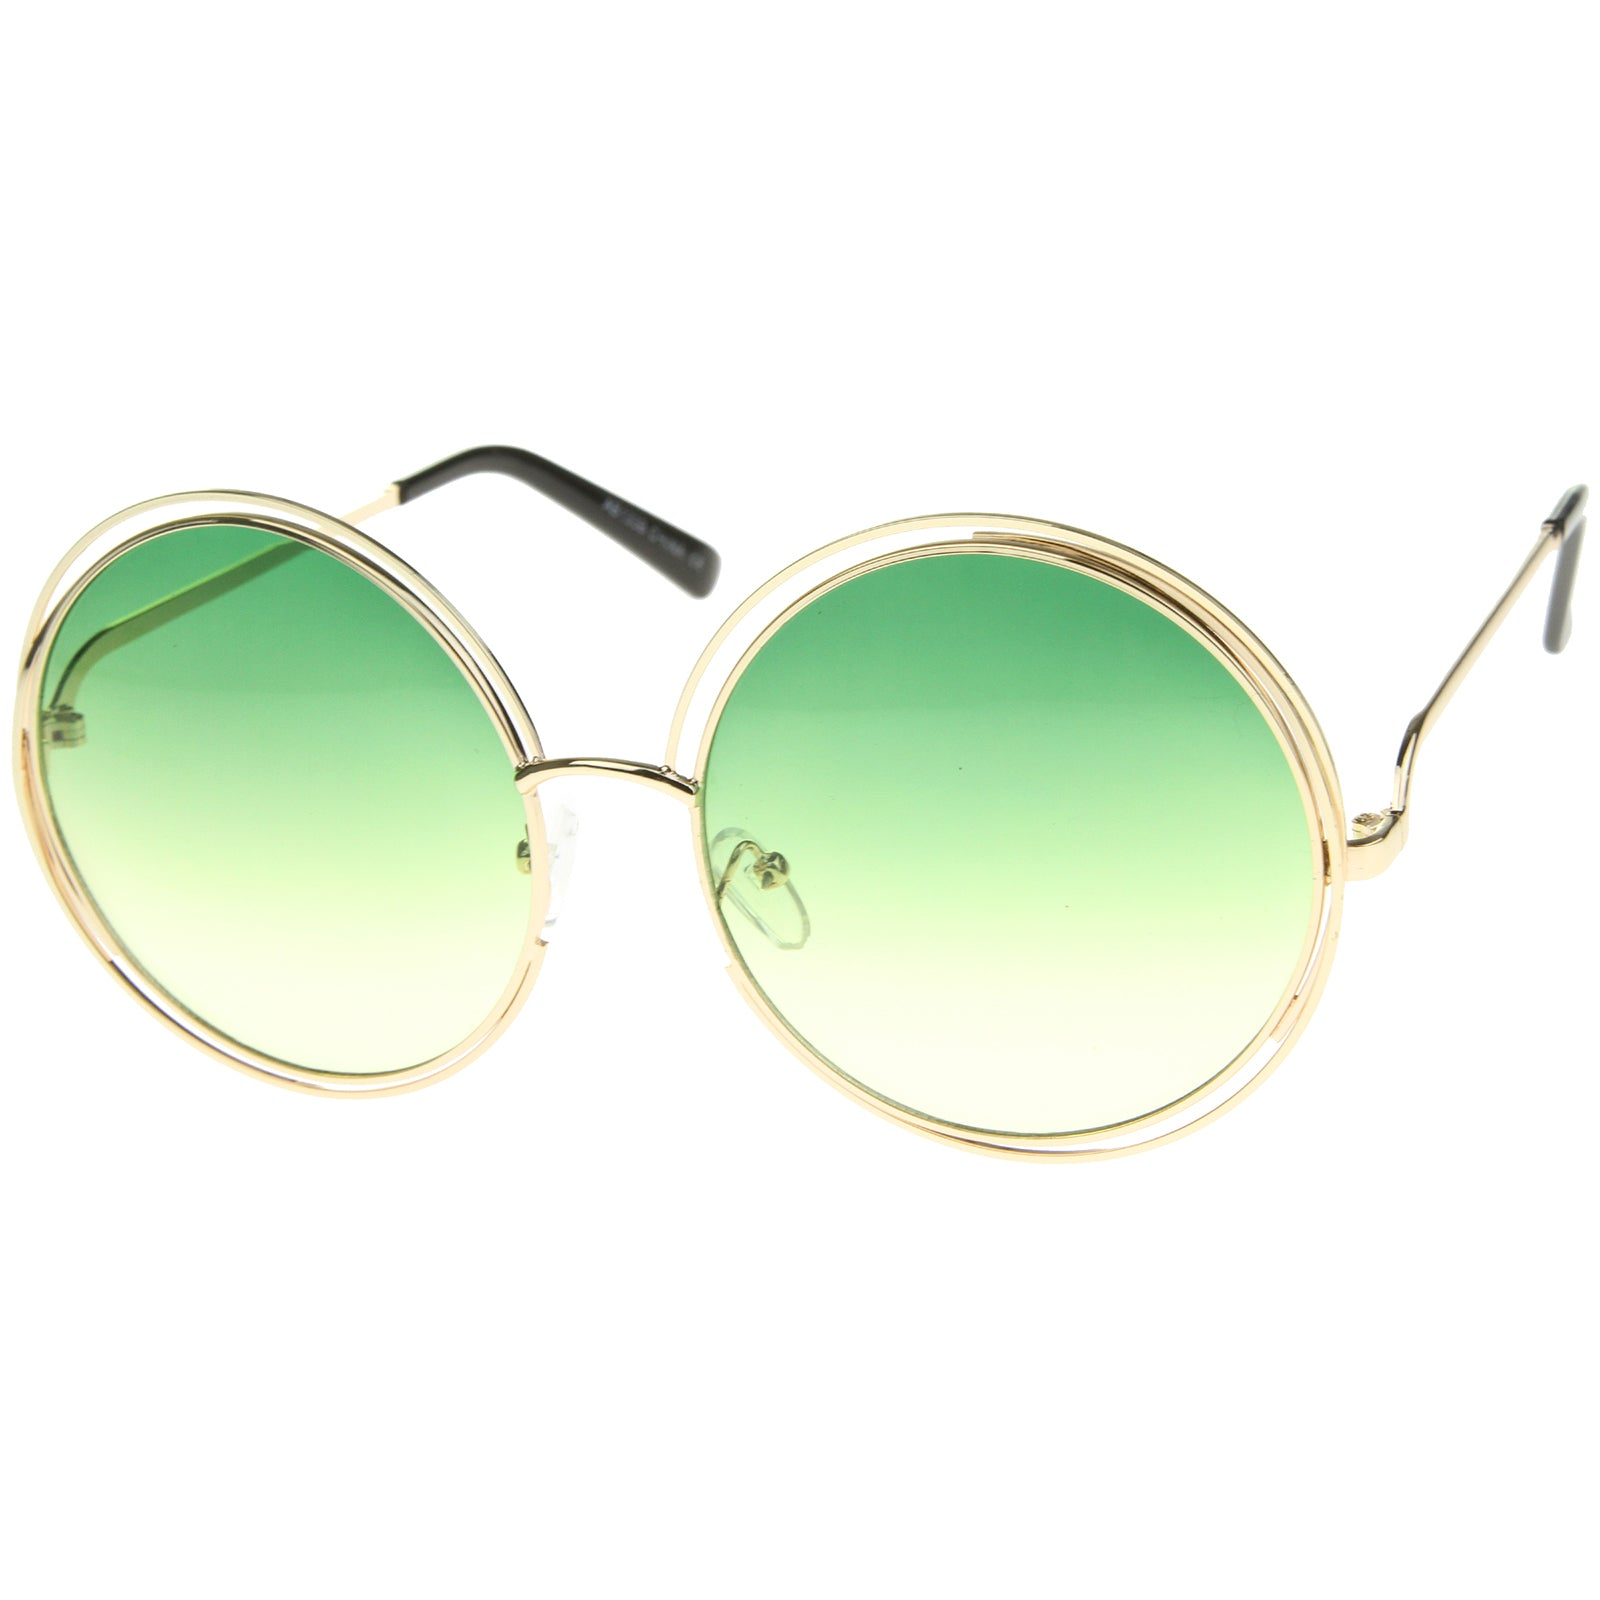 Oversize Wire Frame Gradient Two-Tone Color Lens Round Sunglasses 61mm - sunglass.la - 6